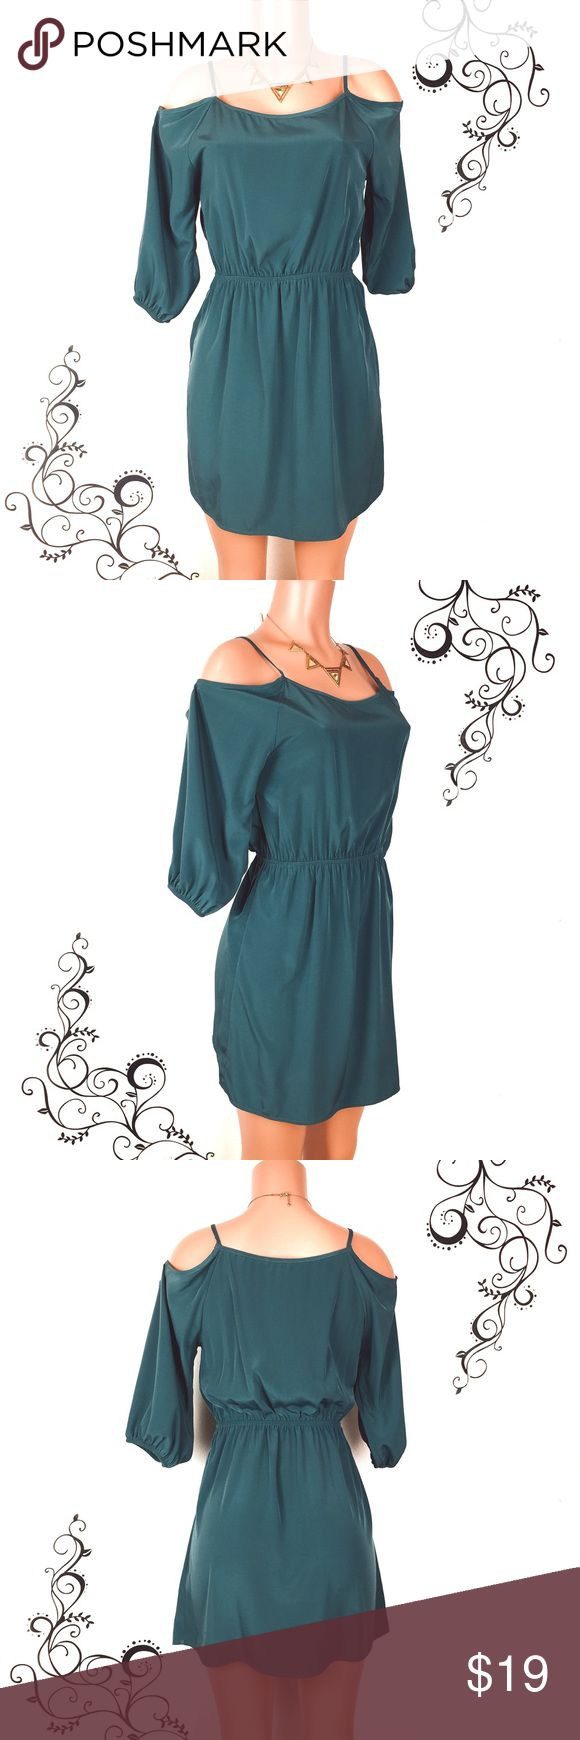 """EVERLY teal green cold shoulder summer dress Stylish cold shoulder teal green dress that's just perfect for summer.  Pair w a statement necklace and some cute sandals and you're looking good.  Flowy & smooth fabric with elastic waistband & sleeve band.    Condition: like new, no material flaws Size: Waist stretches from 13-19""""  Length: 34.5 inches (straps to hem) Fabric: polyester  🚫trade 🏷lowest price unless bundled Everly Dresses"""